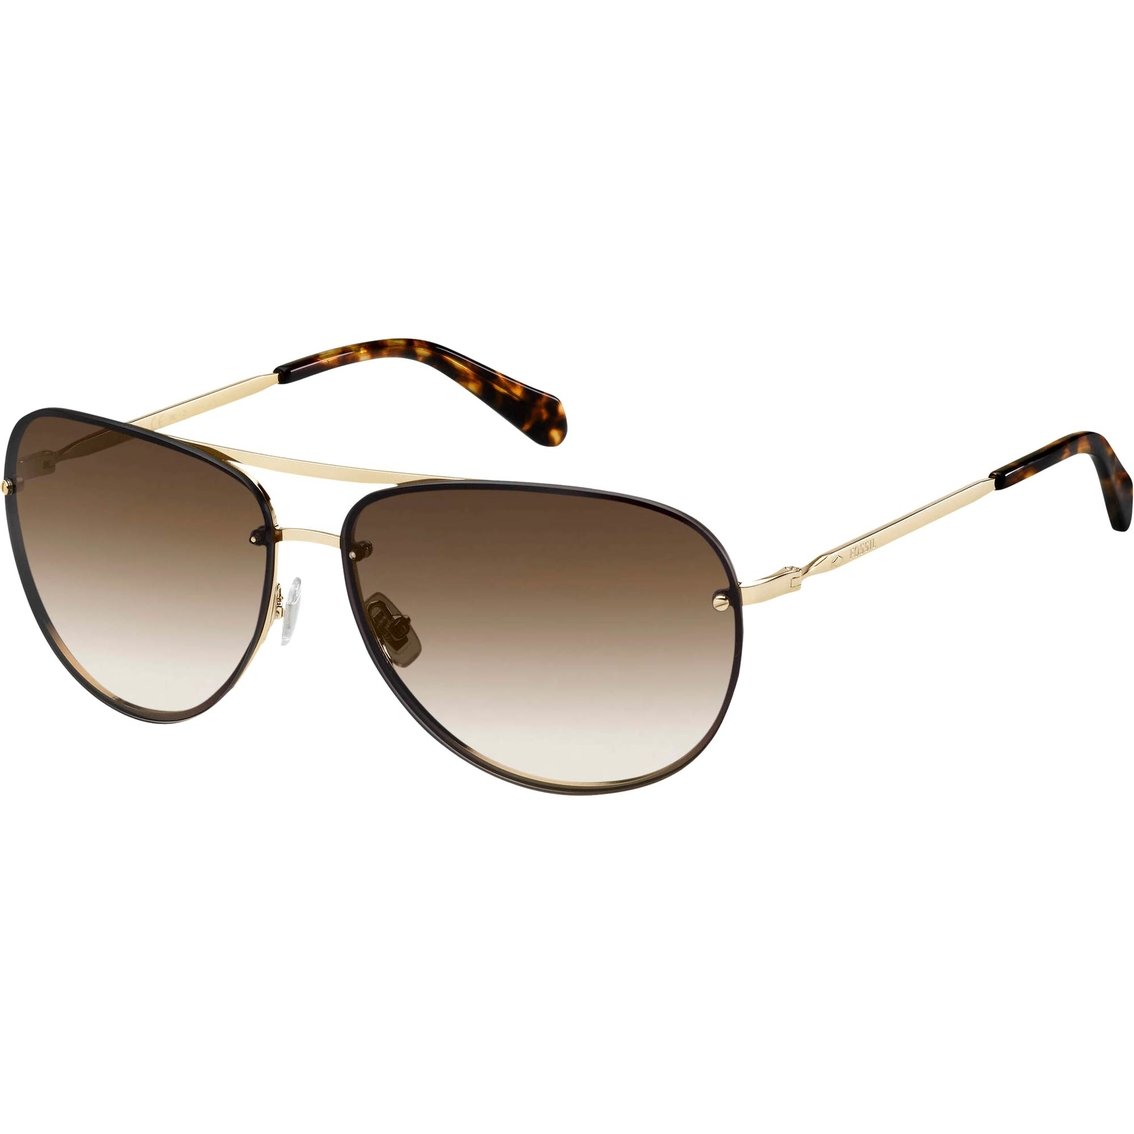 48fbacf83d Fossil Eyewear Collection Metal Aviator Sunglasses